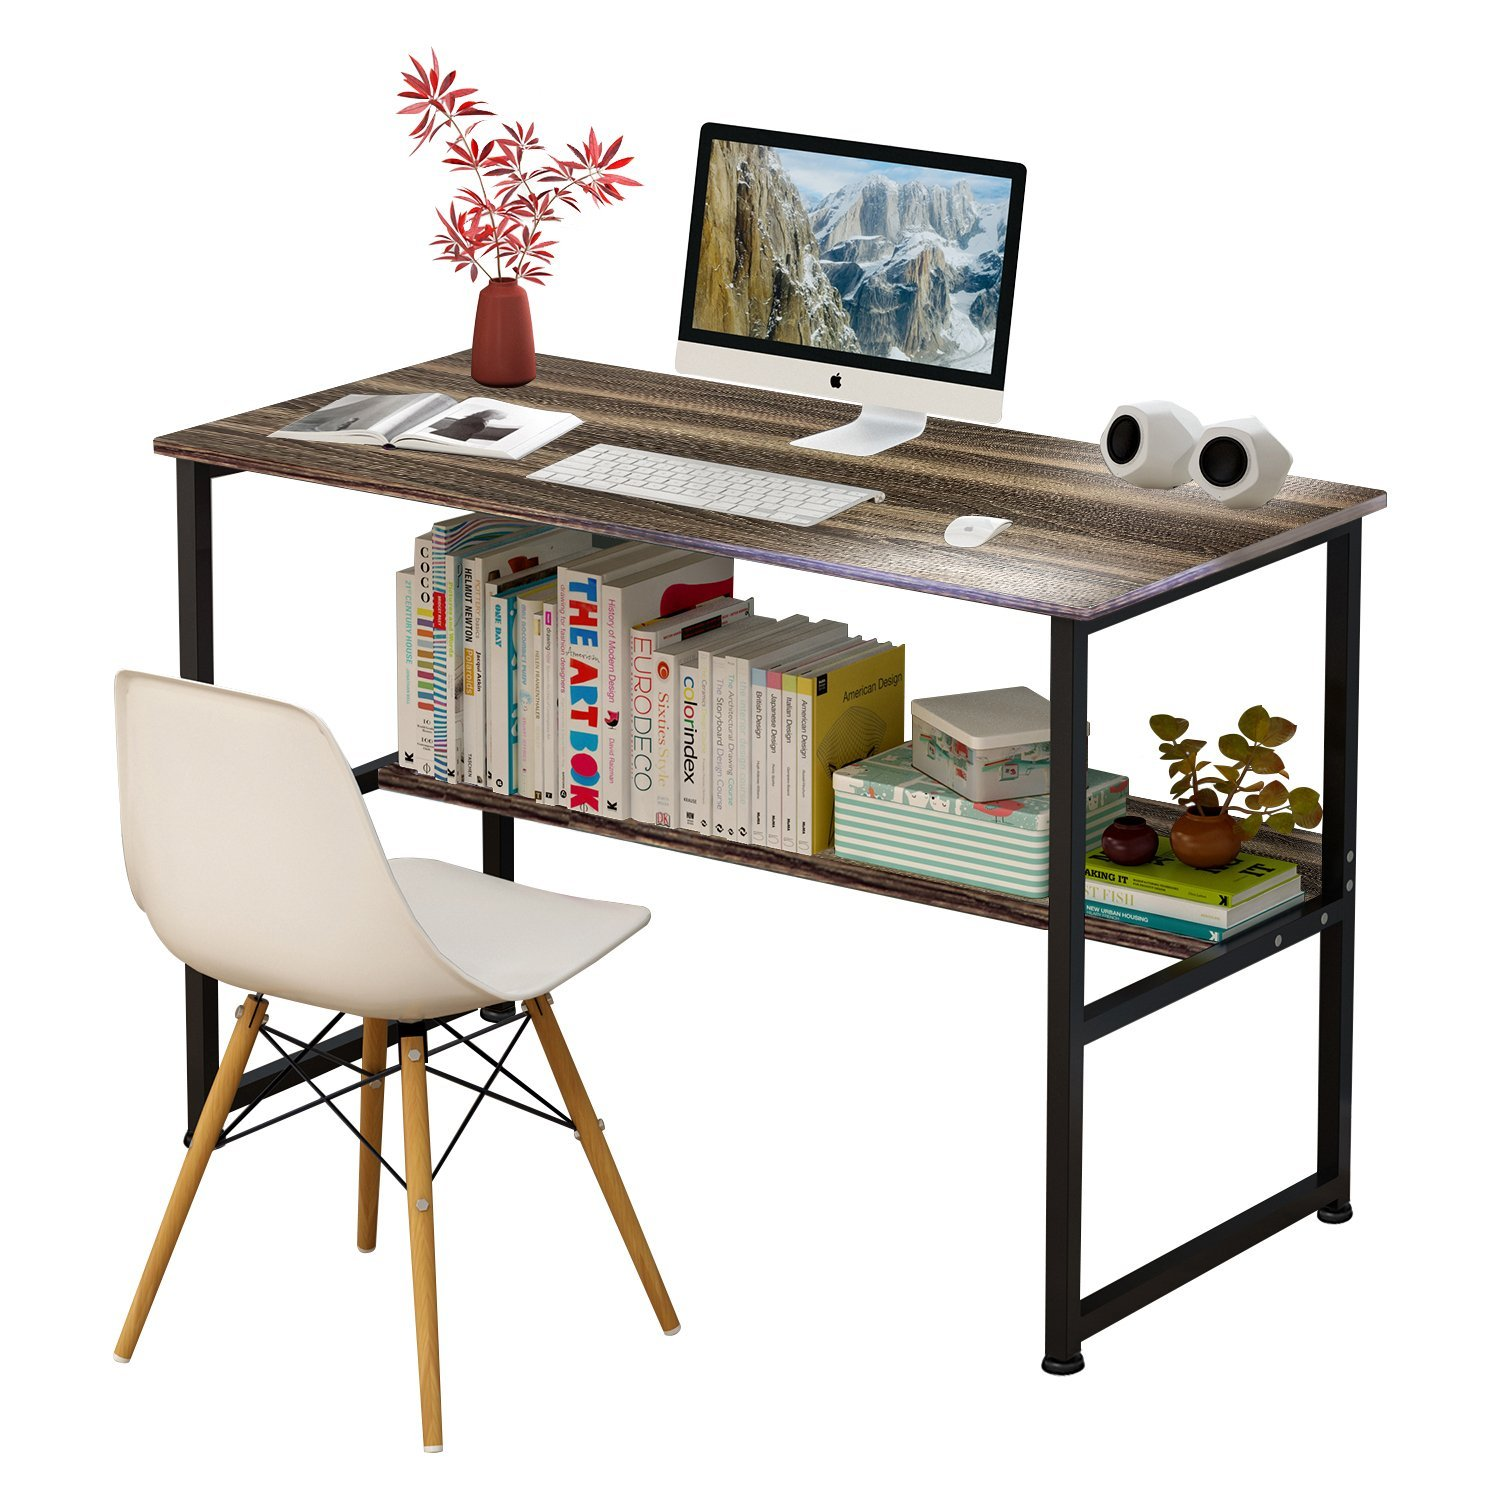 Jerry & Maggie - Wood & Steel Table Simple Plain Lap Desk Computer Desk Table Personal Working Space Lapdesk With 4 Steel Legs Stand Desk for Livingroom Bedroom Office - Dark Wood Tone